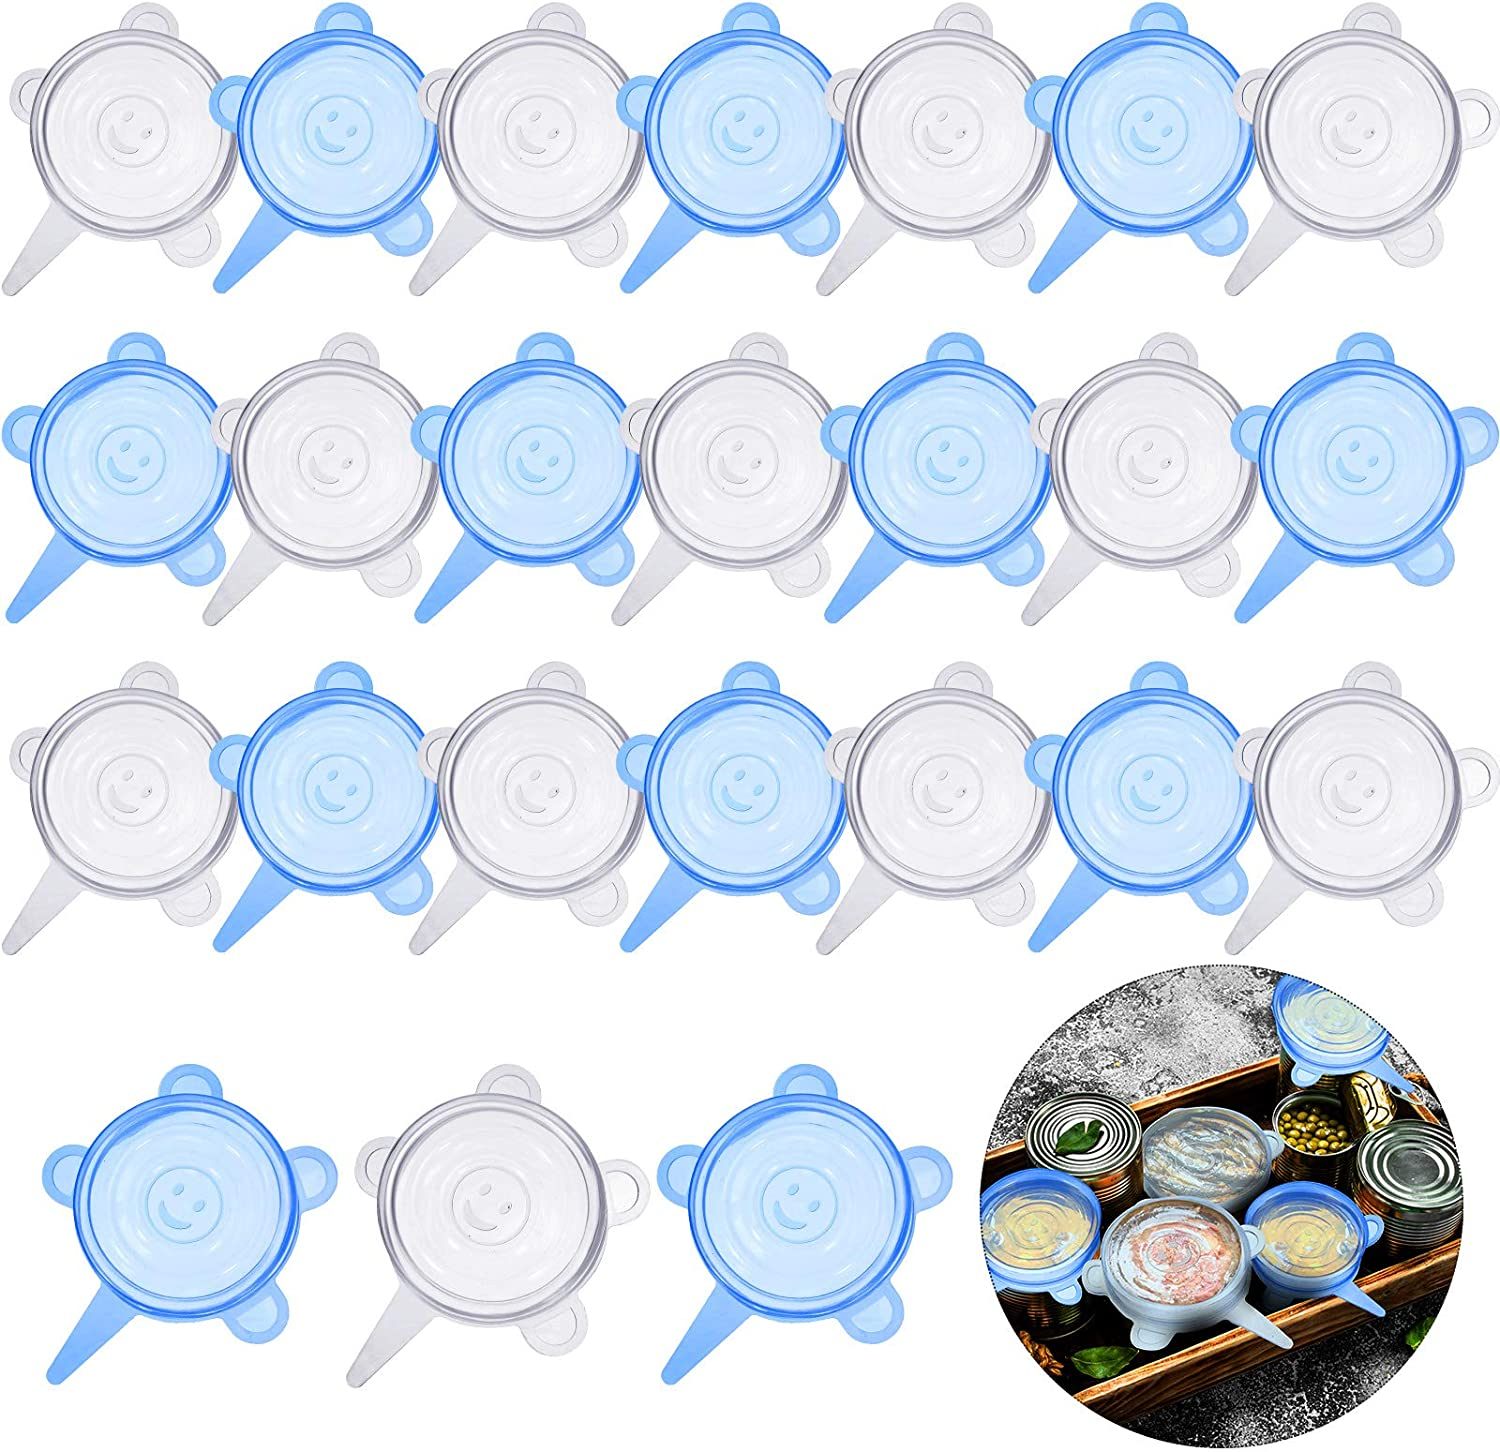 24 Pieces Silicone Stretch Lids Round Elastic Container Lids Blue White Stretch Lids Durable Food Storage Covers for Cups Small Bowls Cans Jars Fruits Vegetables Storage